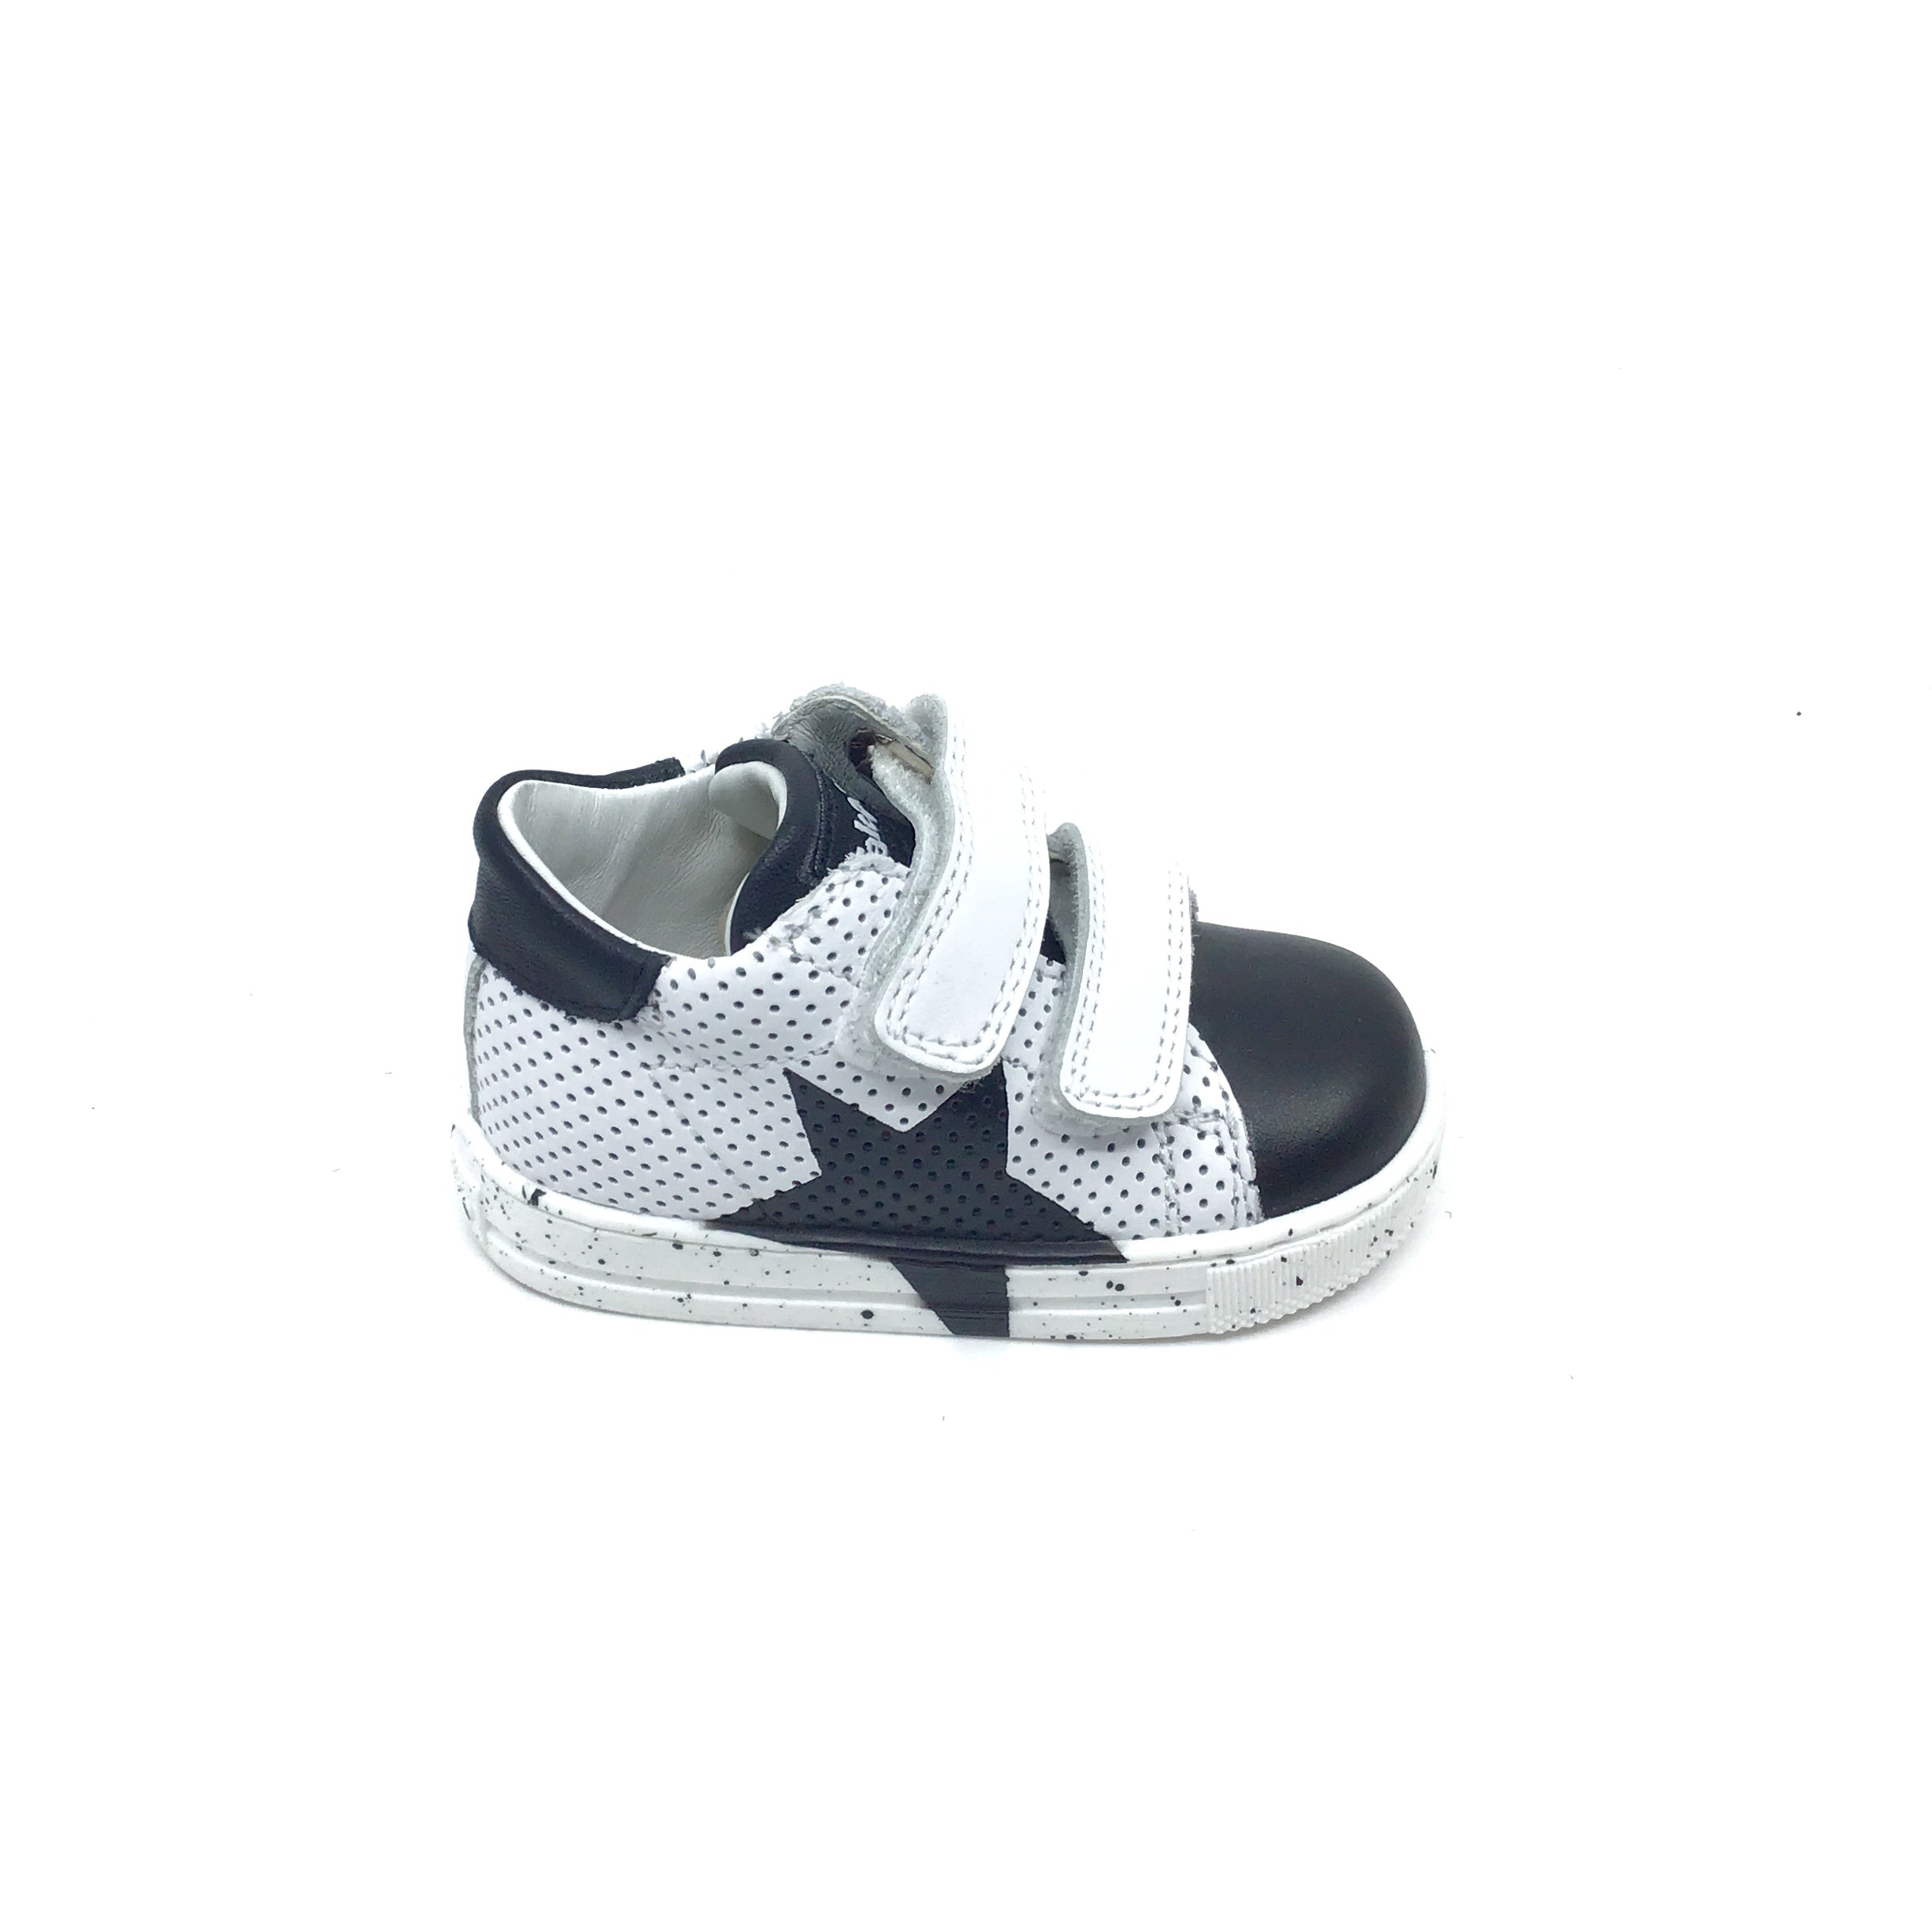 Falcotto White Sneaker with Black Star